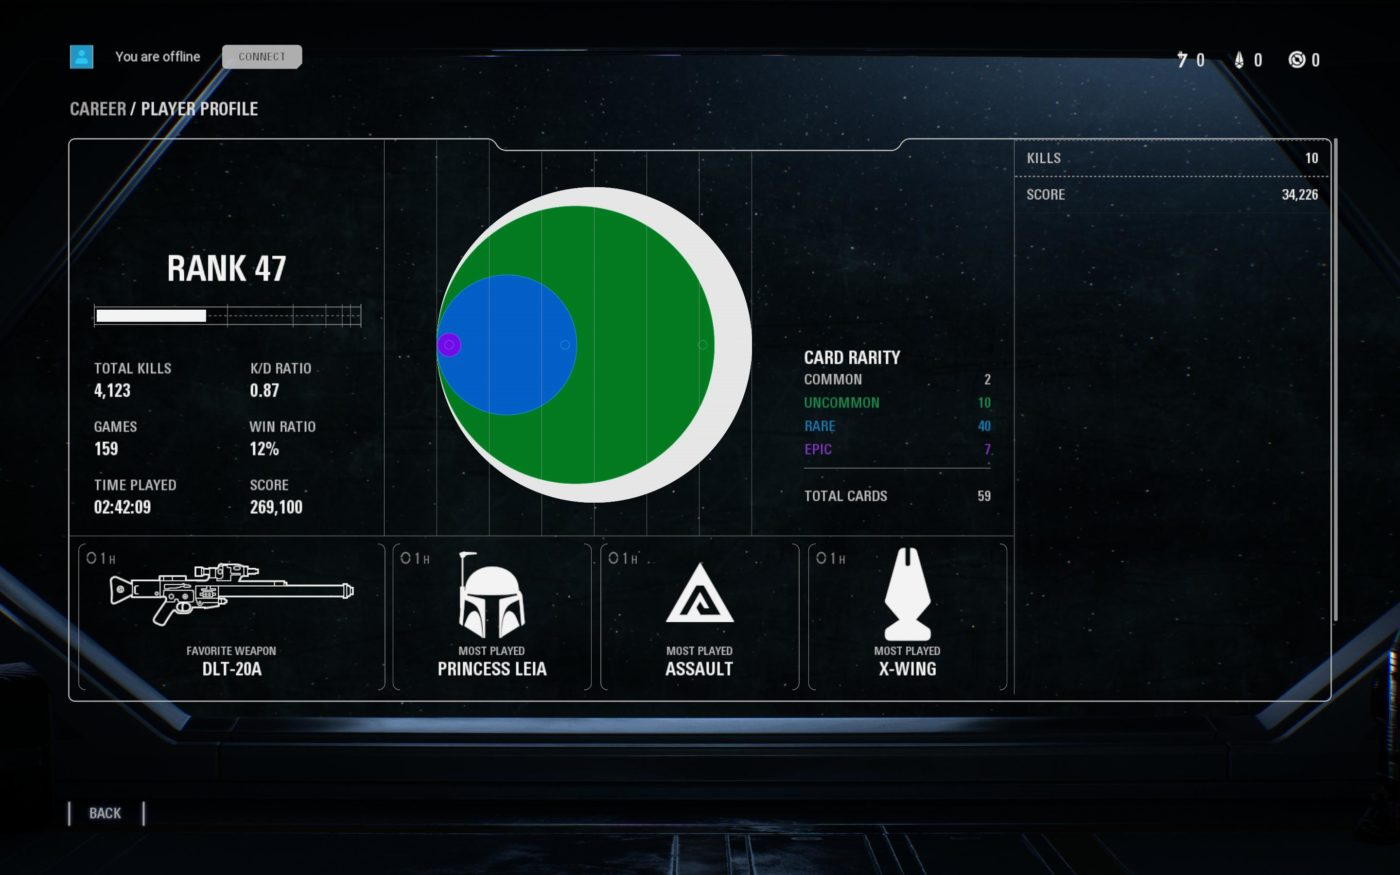 Star Wars Battlefront II Stats Page Exists But From an Earlier Build